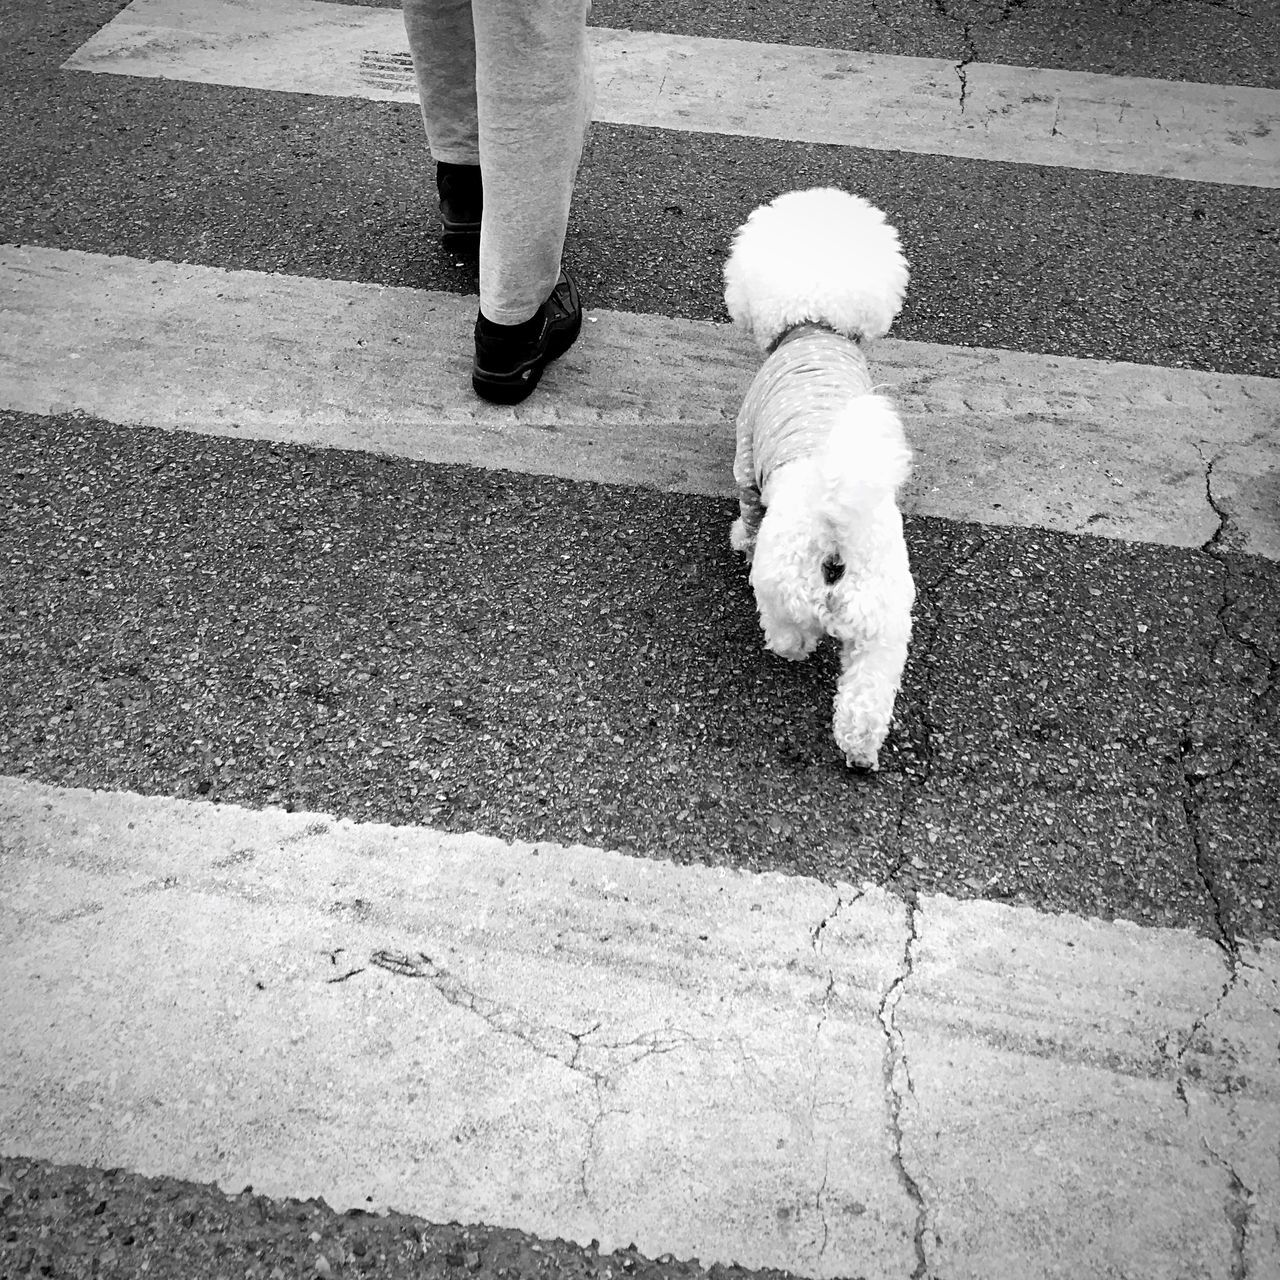 dog, pets, one animal, domestic animals, low section, mammal, real people, day, outdoors, standing, human leg, one person, women, human body part, people